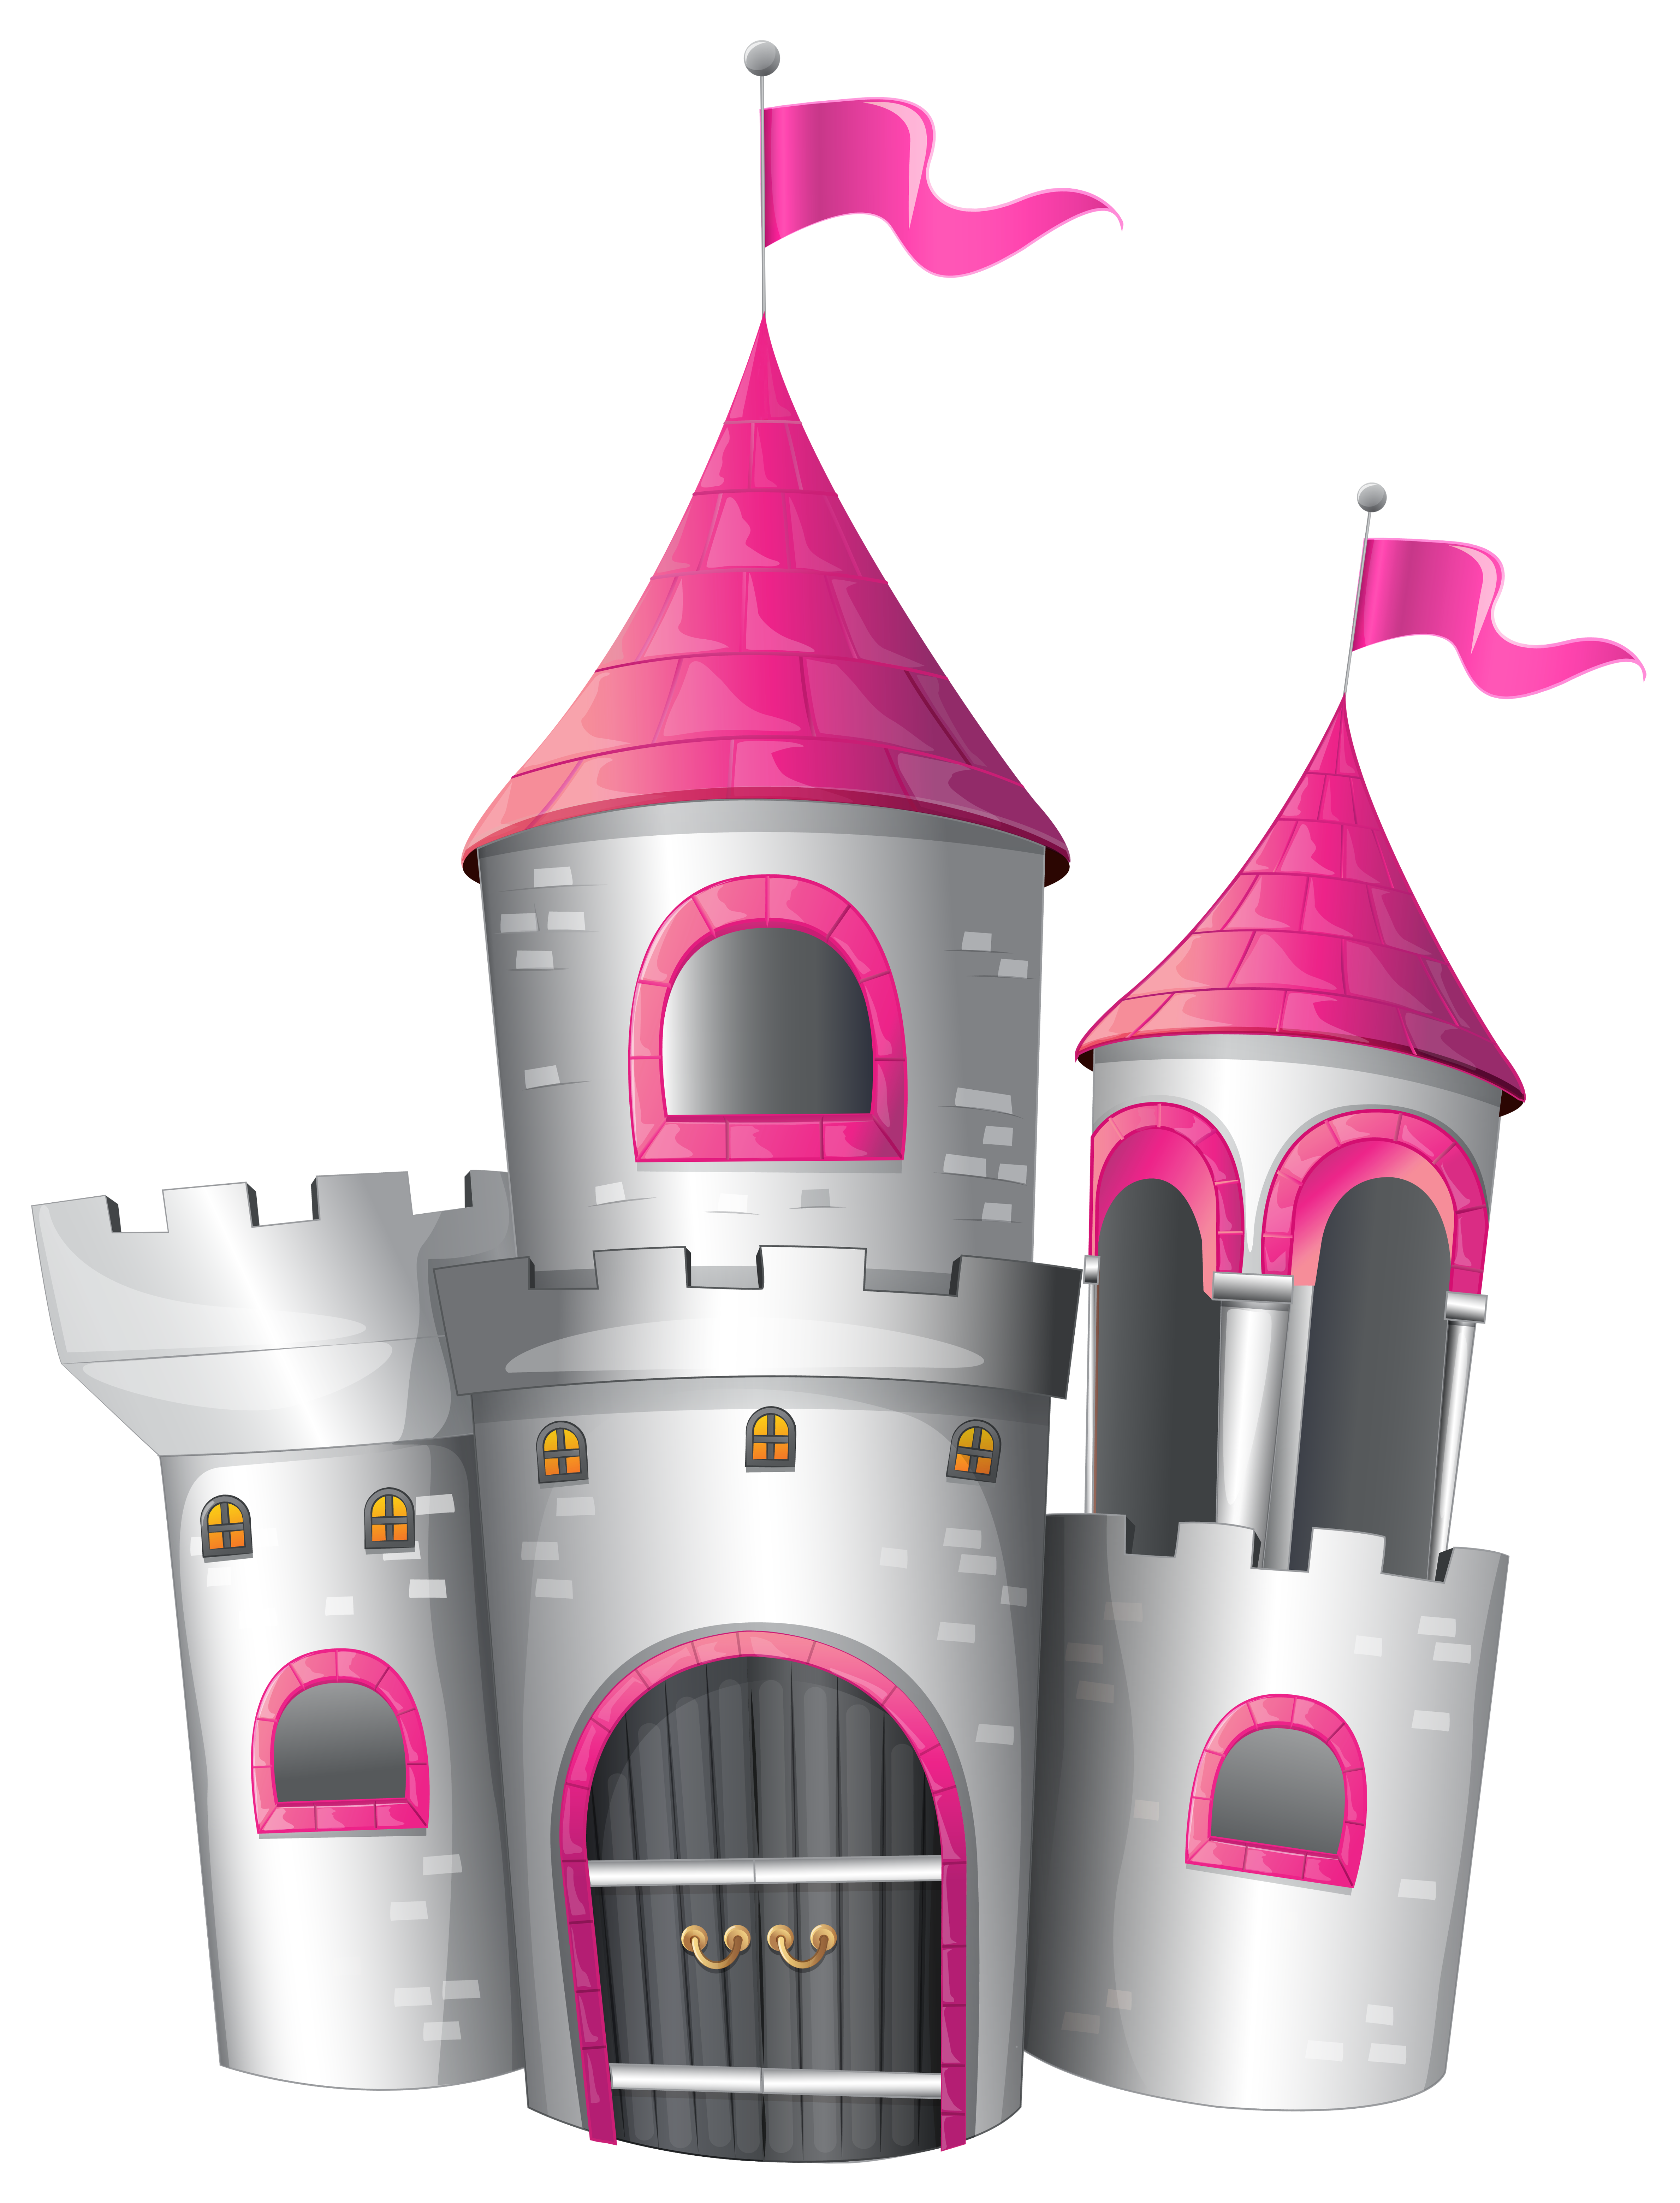 Palace clipart transparent. Pink castle white and